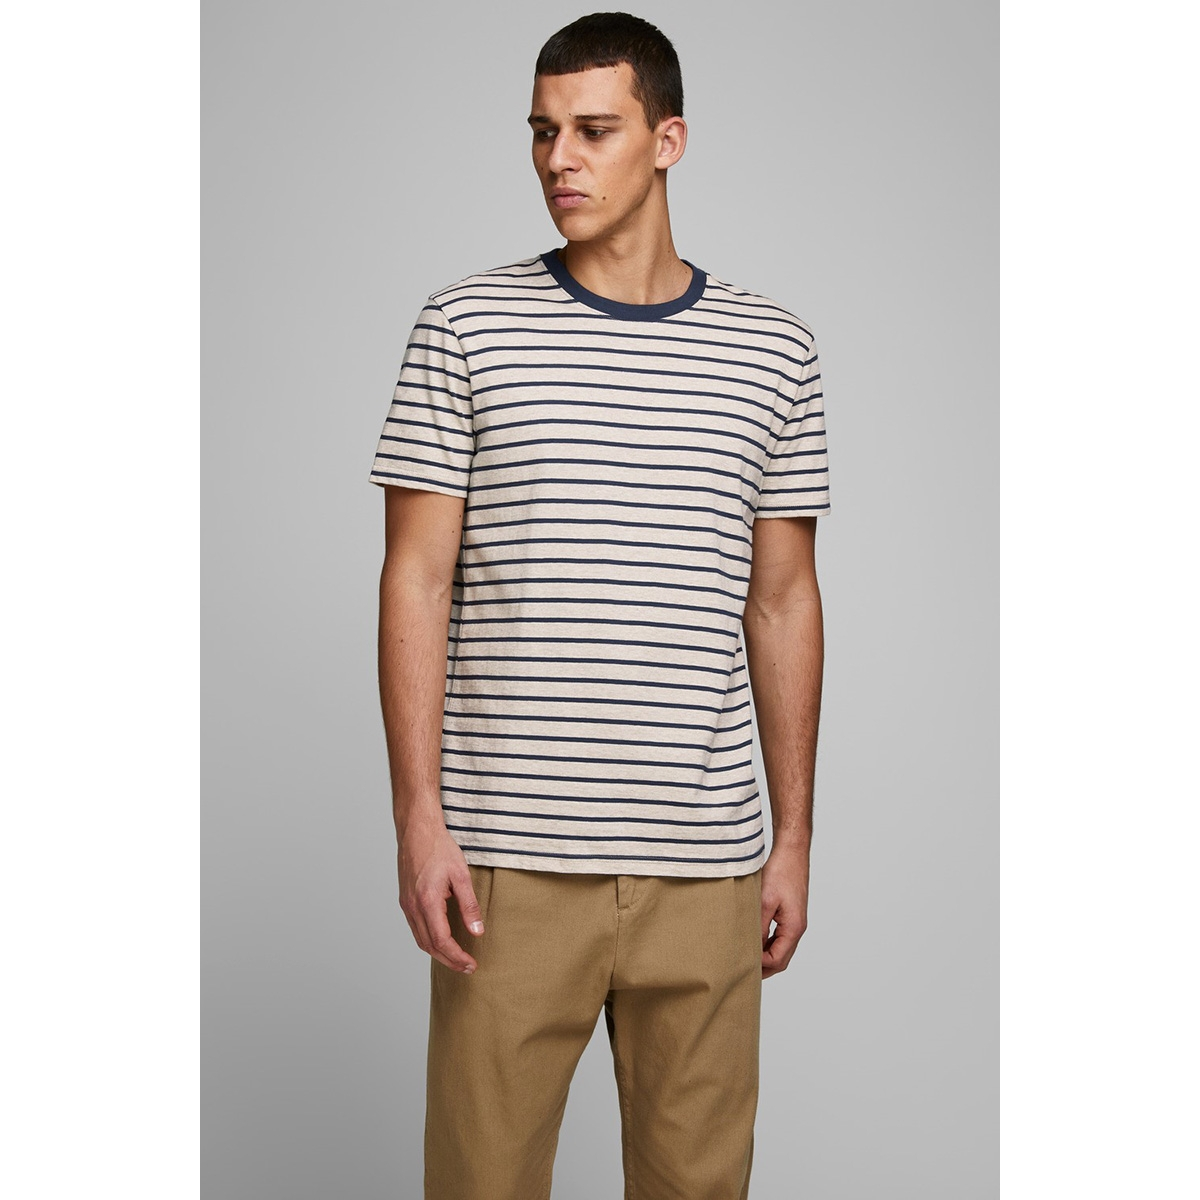 jjestriped tee ss crew neck sts 12164640 jack & jones t-shirt white melange/slim fit